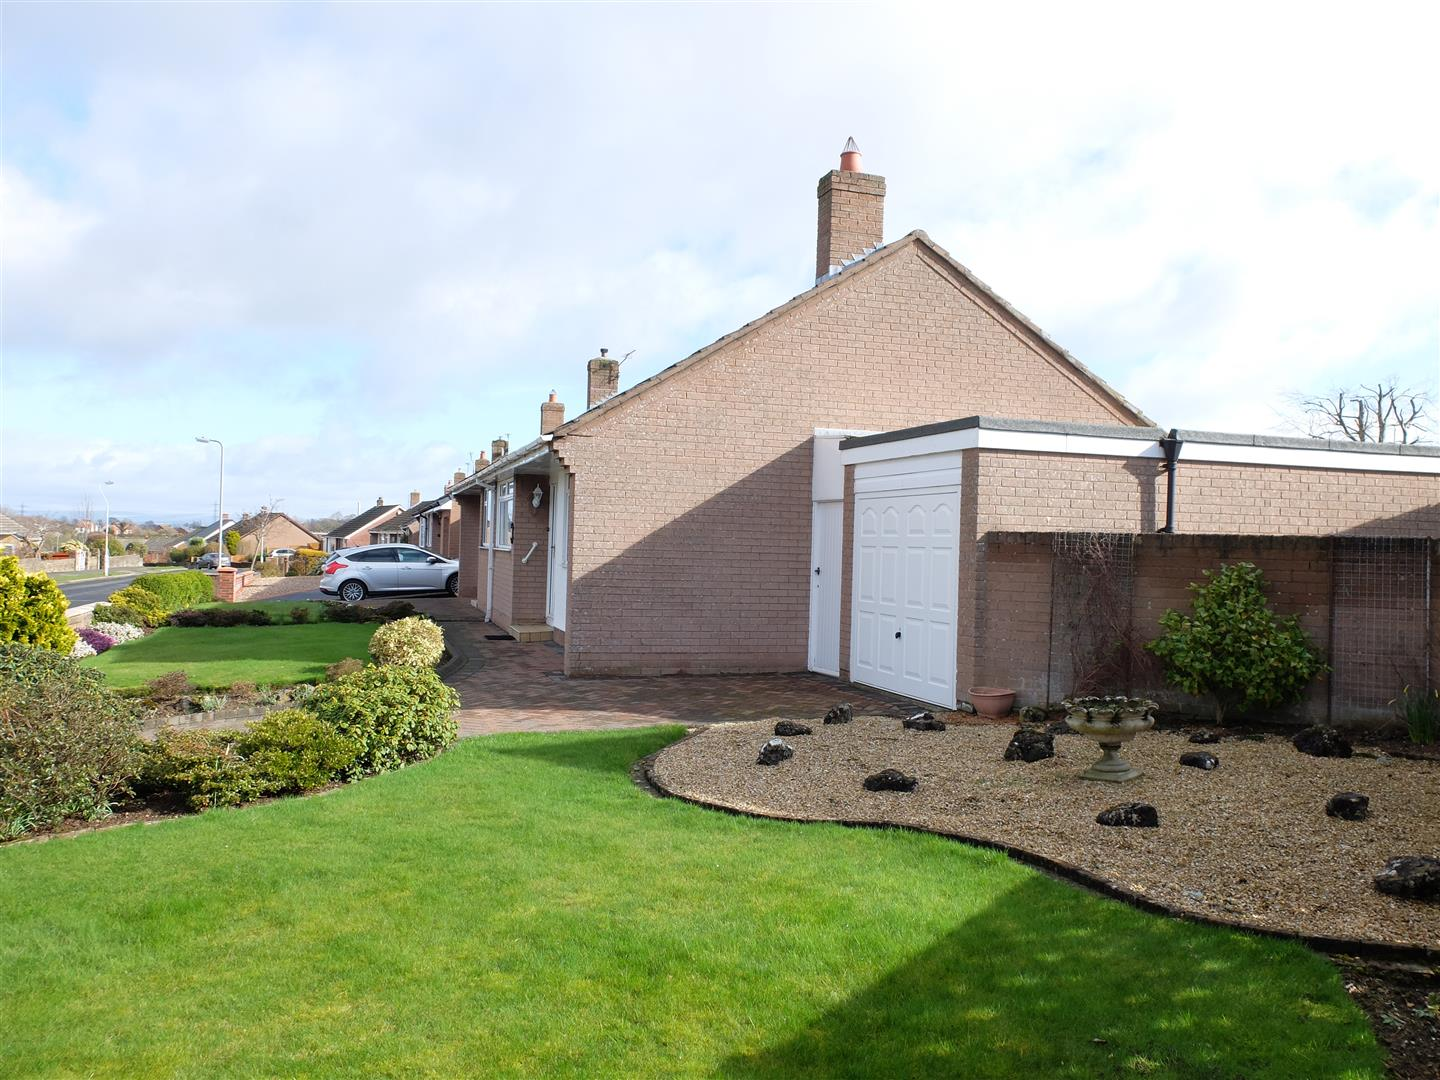 2 Bedrooms Bungalow - Semi Detached On Sale 2 Farbrow Road Carlisle 150,000